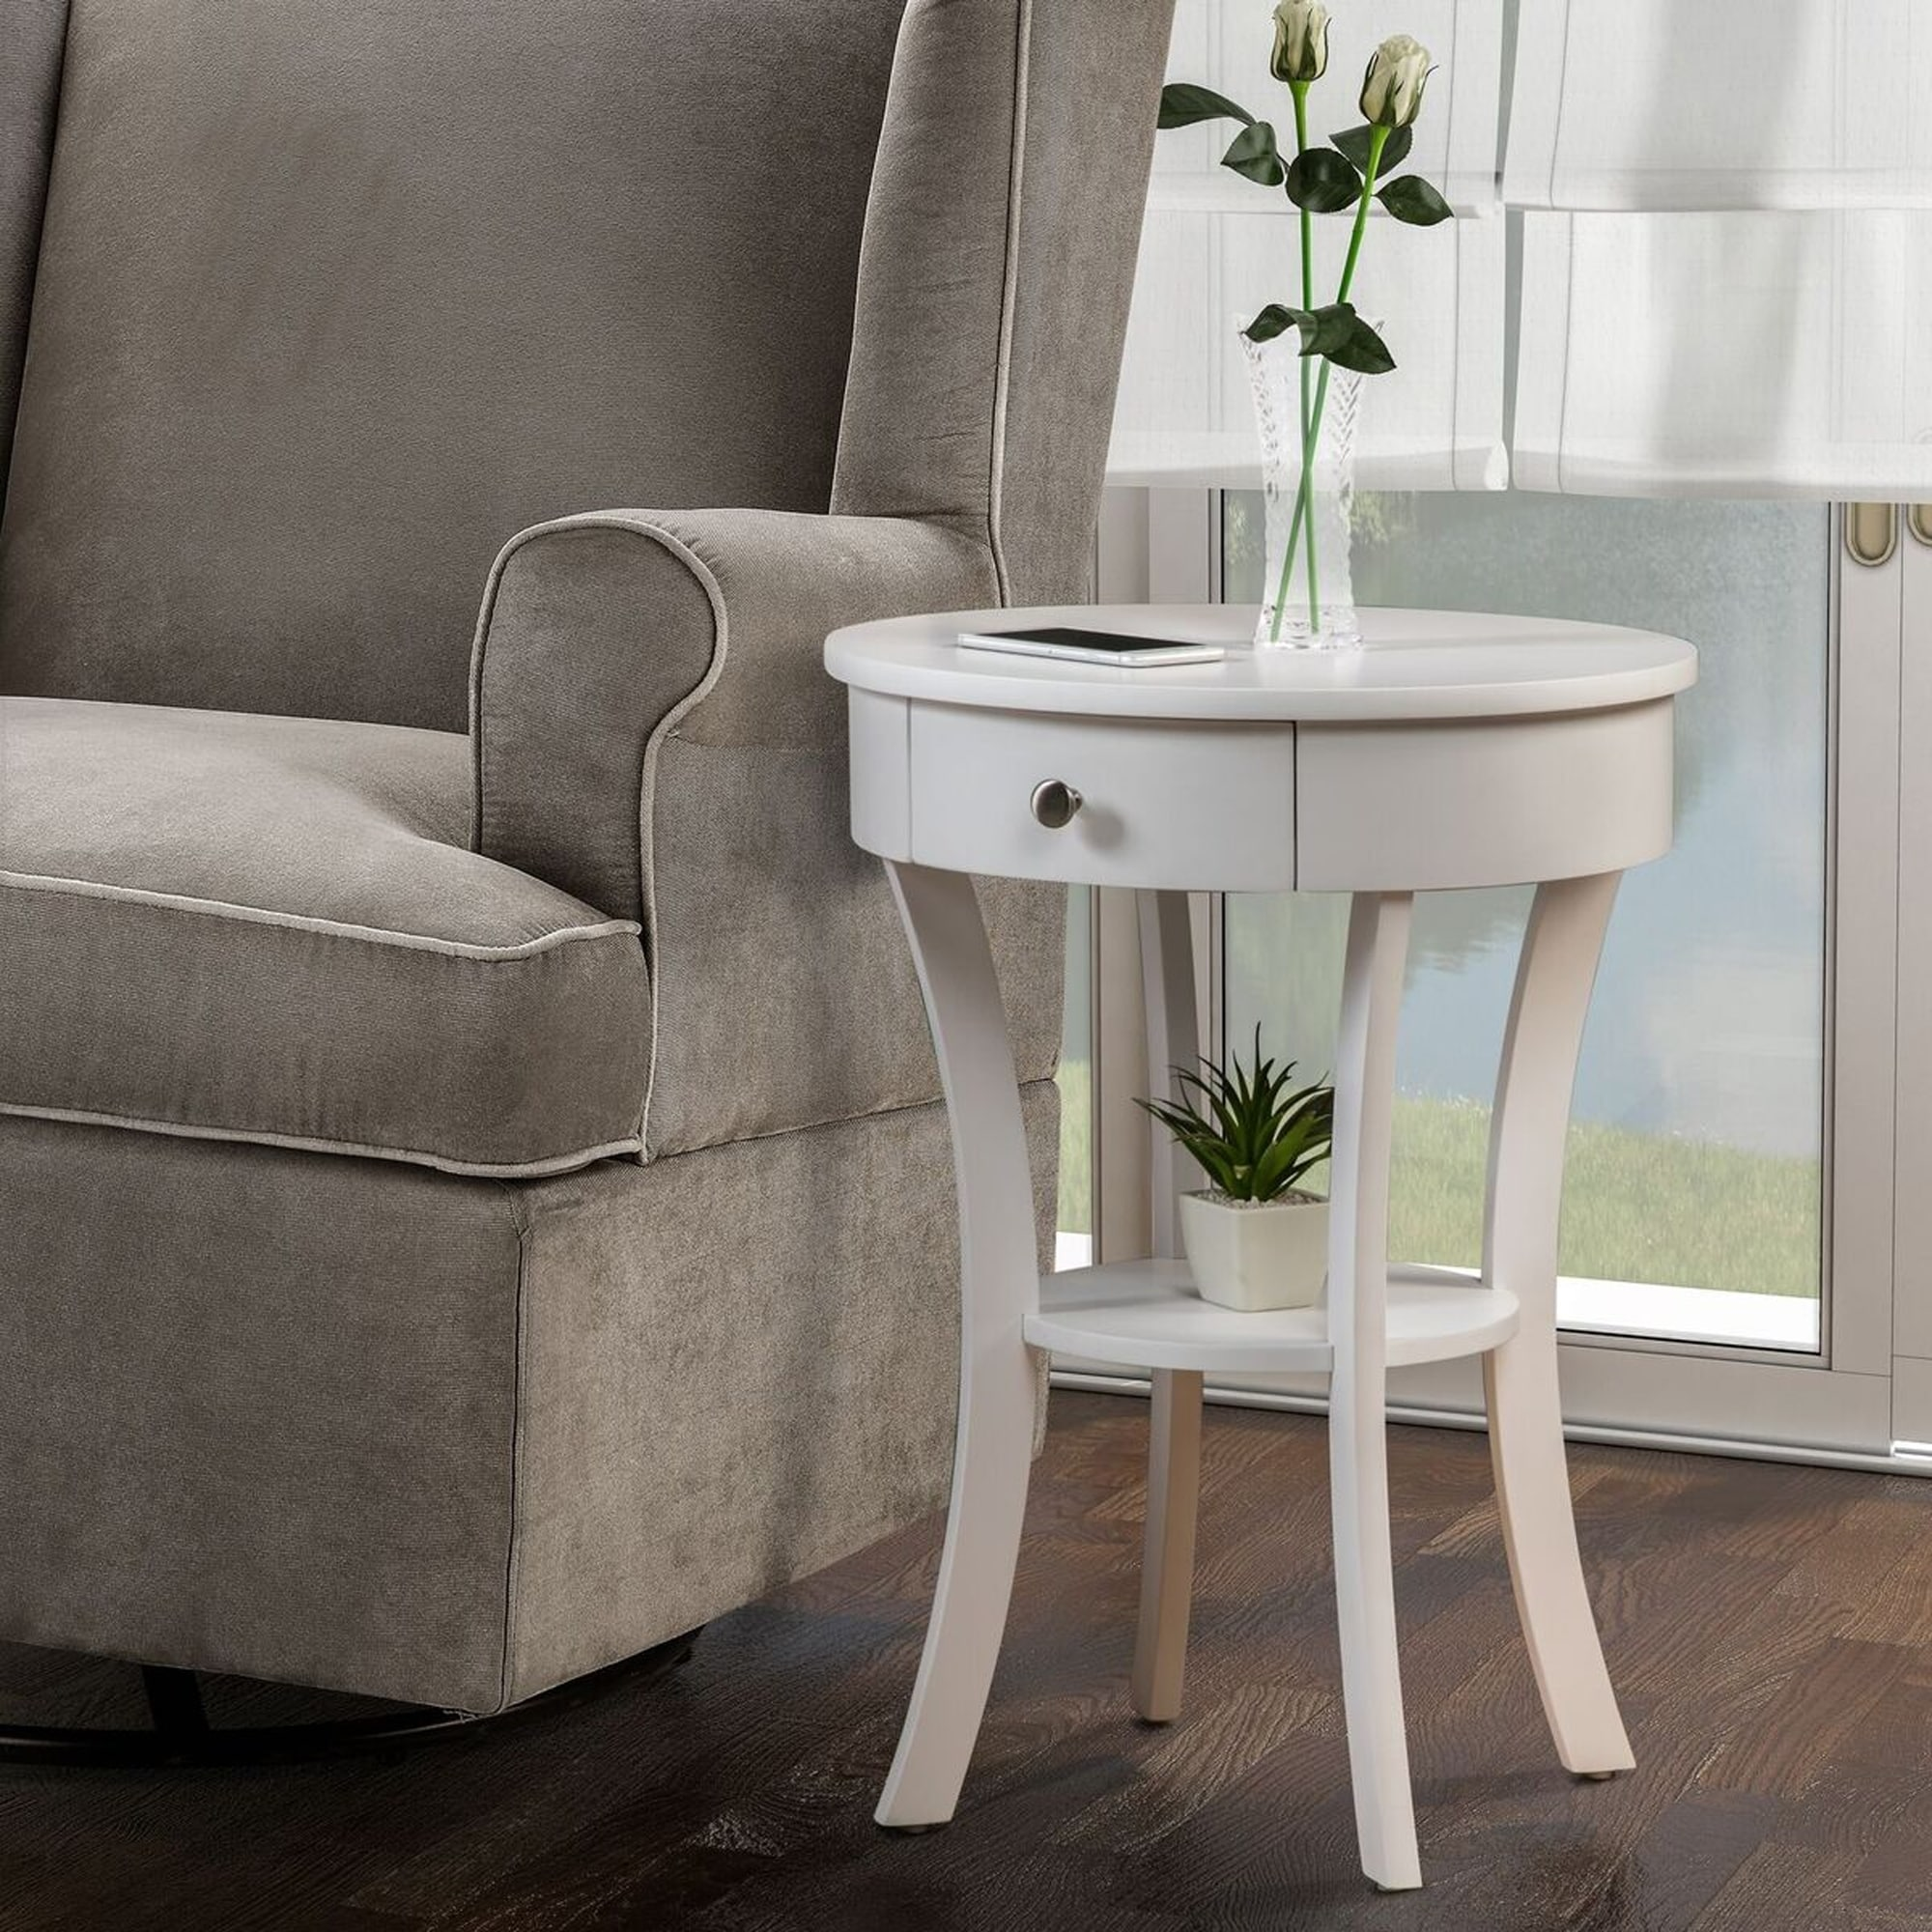 marvellous modern round pedestal side table paula deen tall antique distressed wood accent rene white grey small roundhill diy furniture wooden large black home full size oak legs